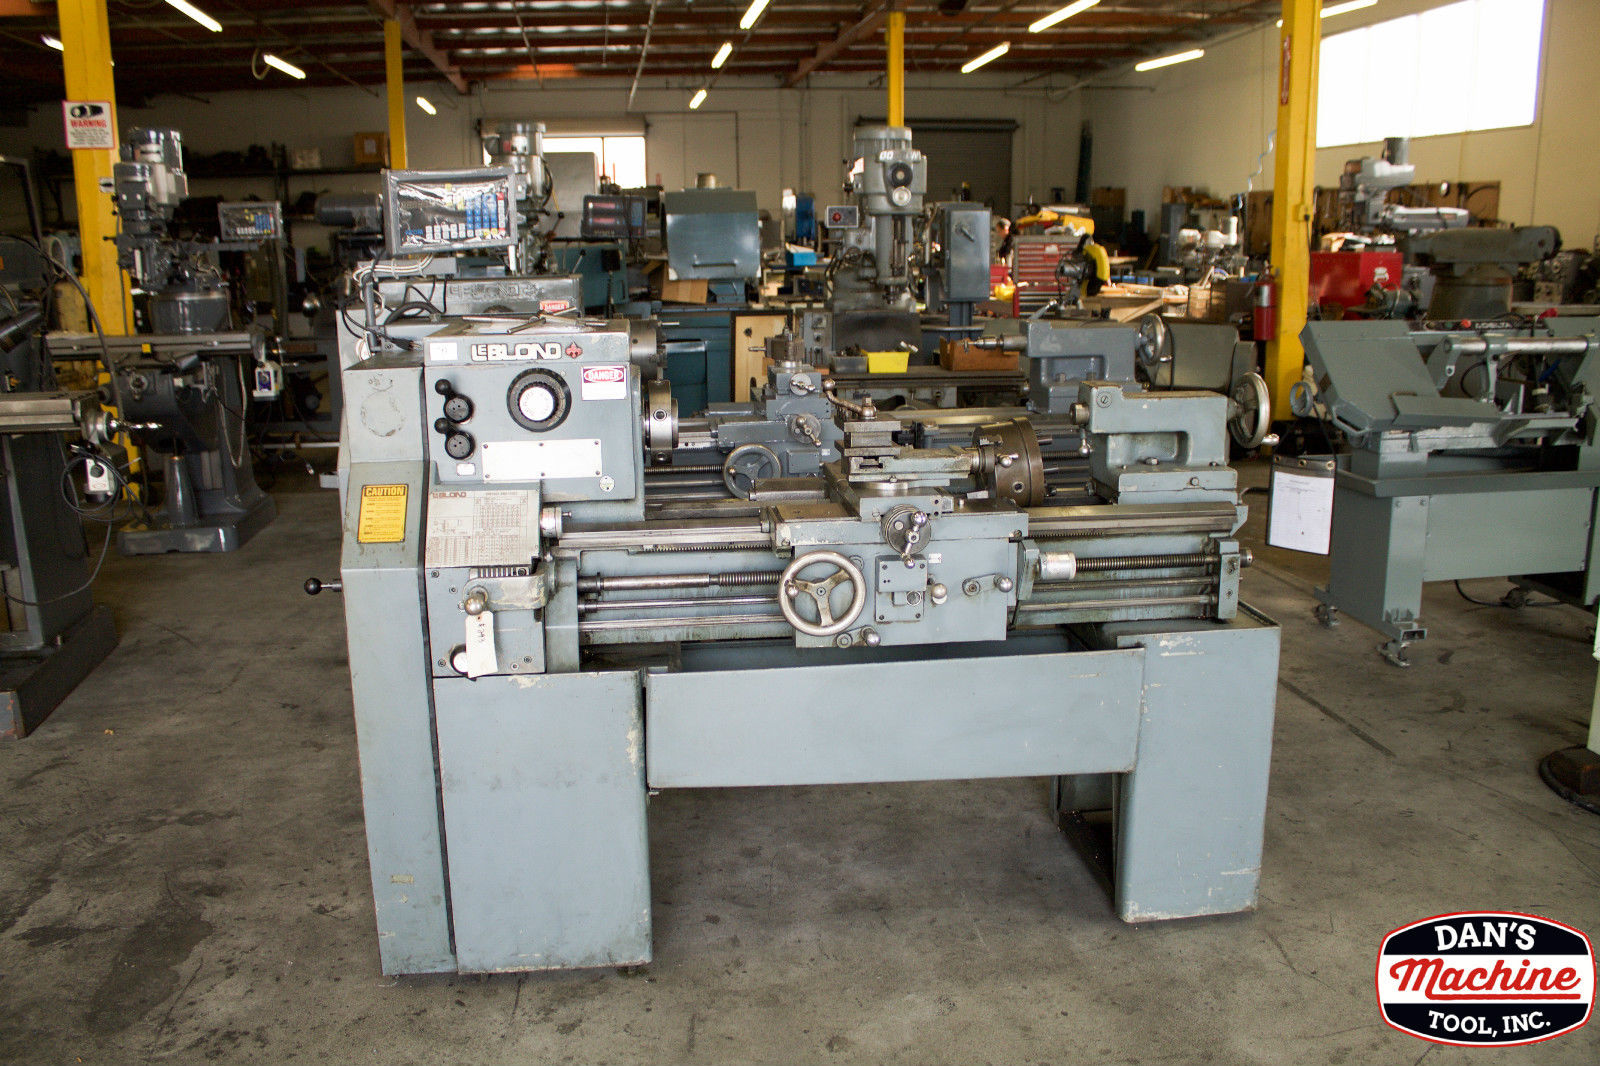 Used Manufacturing Equipment For Sale Anaheim California Leblond Lathe Wiring Schematic